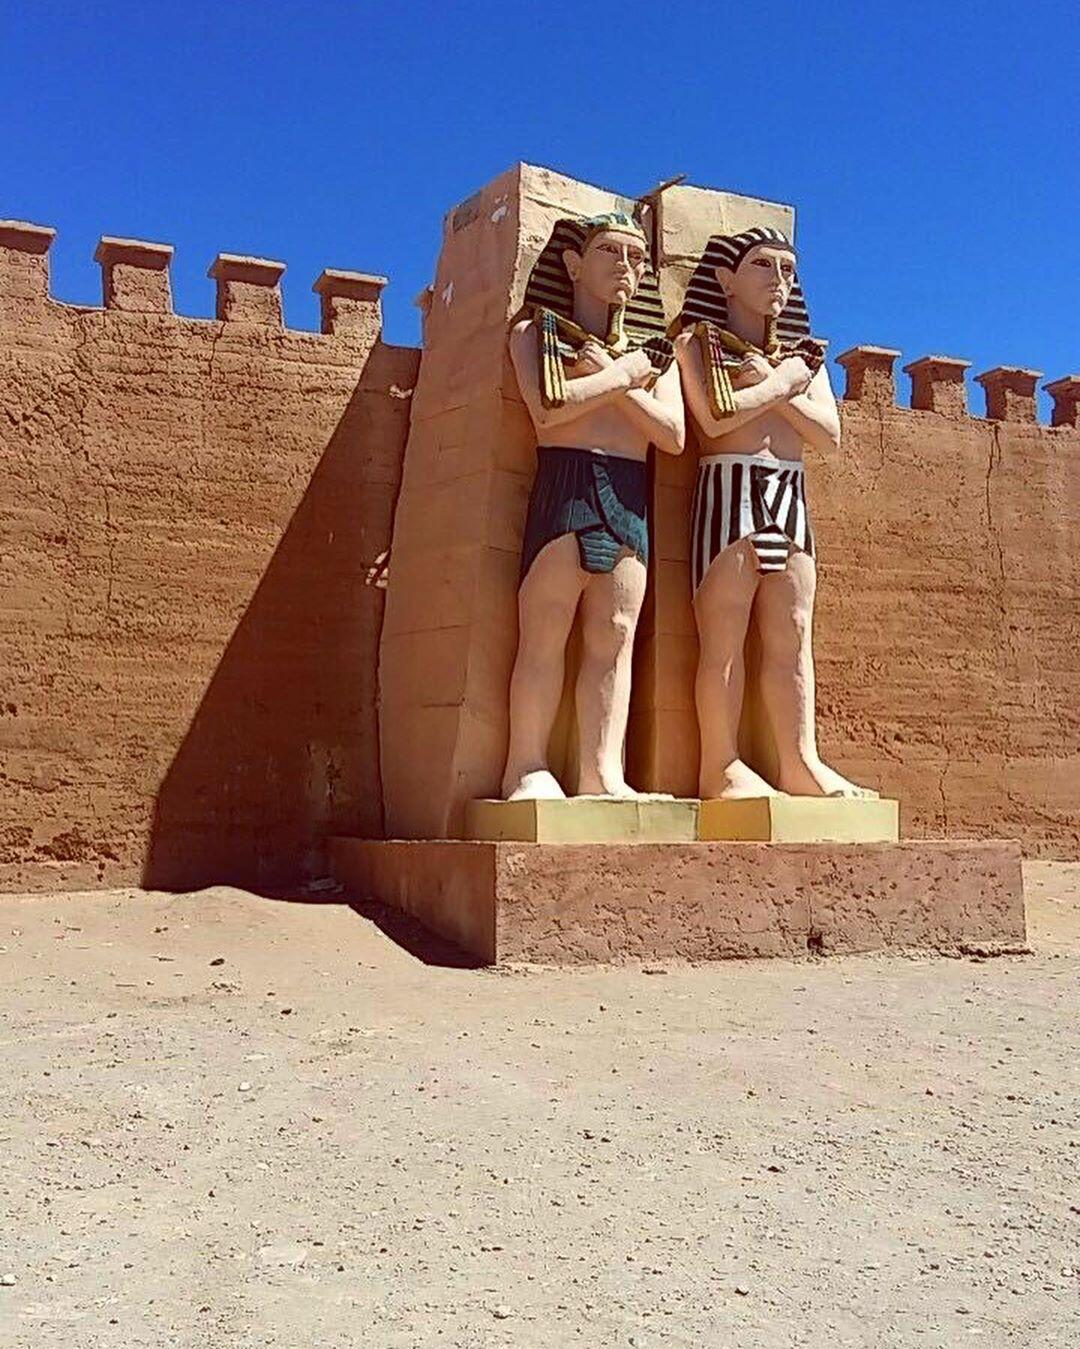 Ouarzazate, with our 9 days morocco itinerary from Tangier to Marrakech